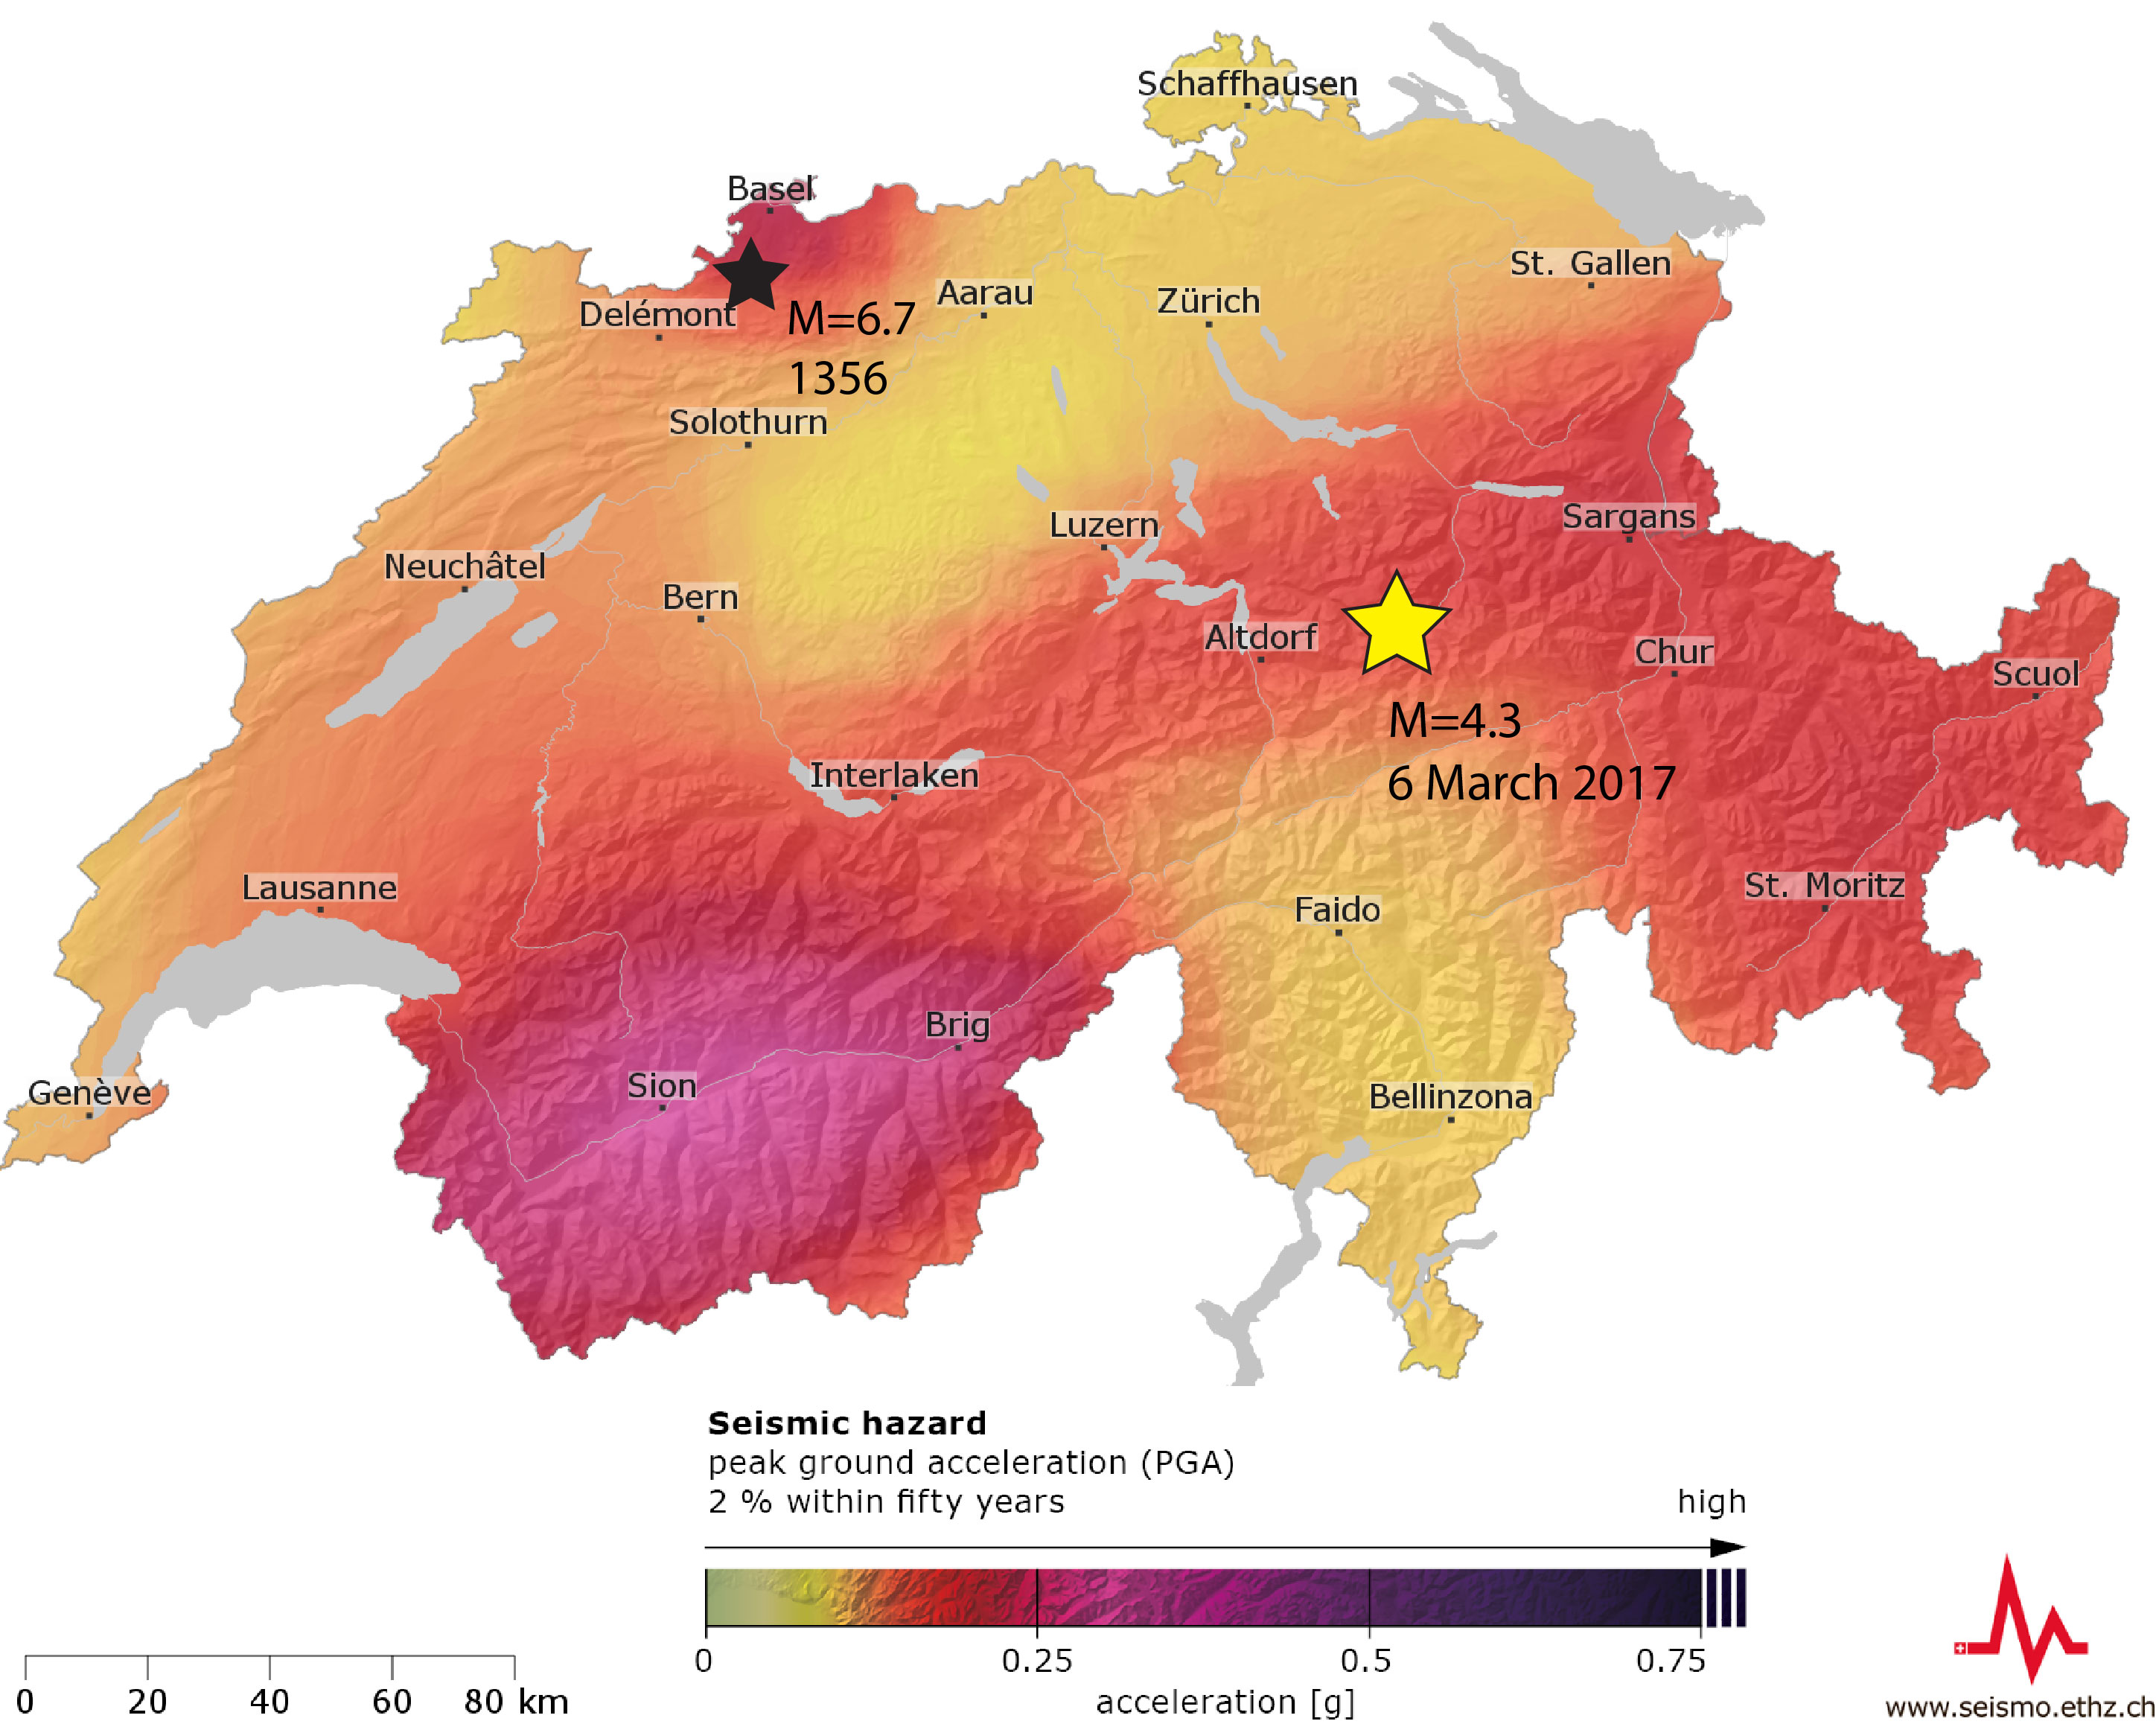 swiss-seismic-hazard-map-earthquake-map